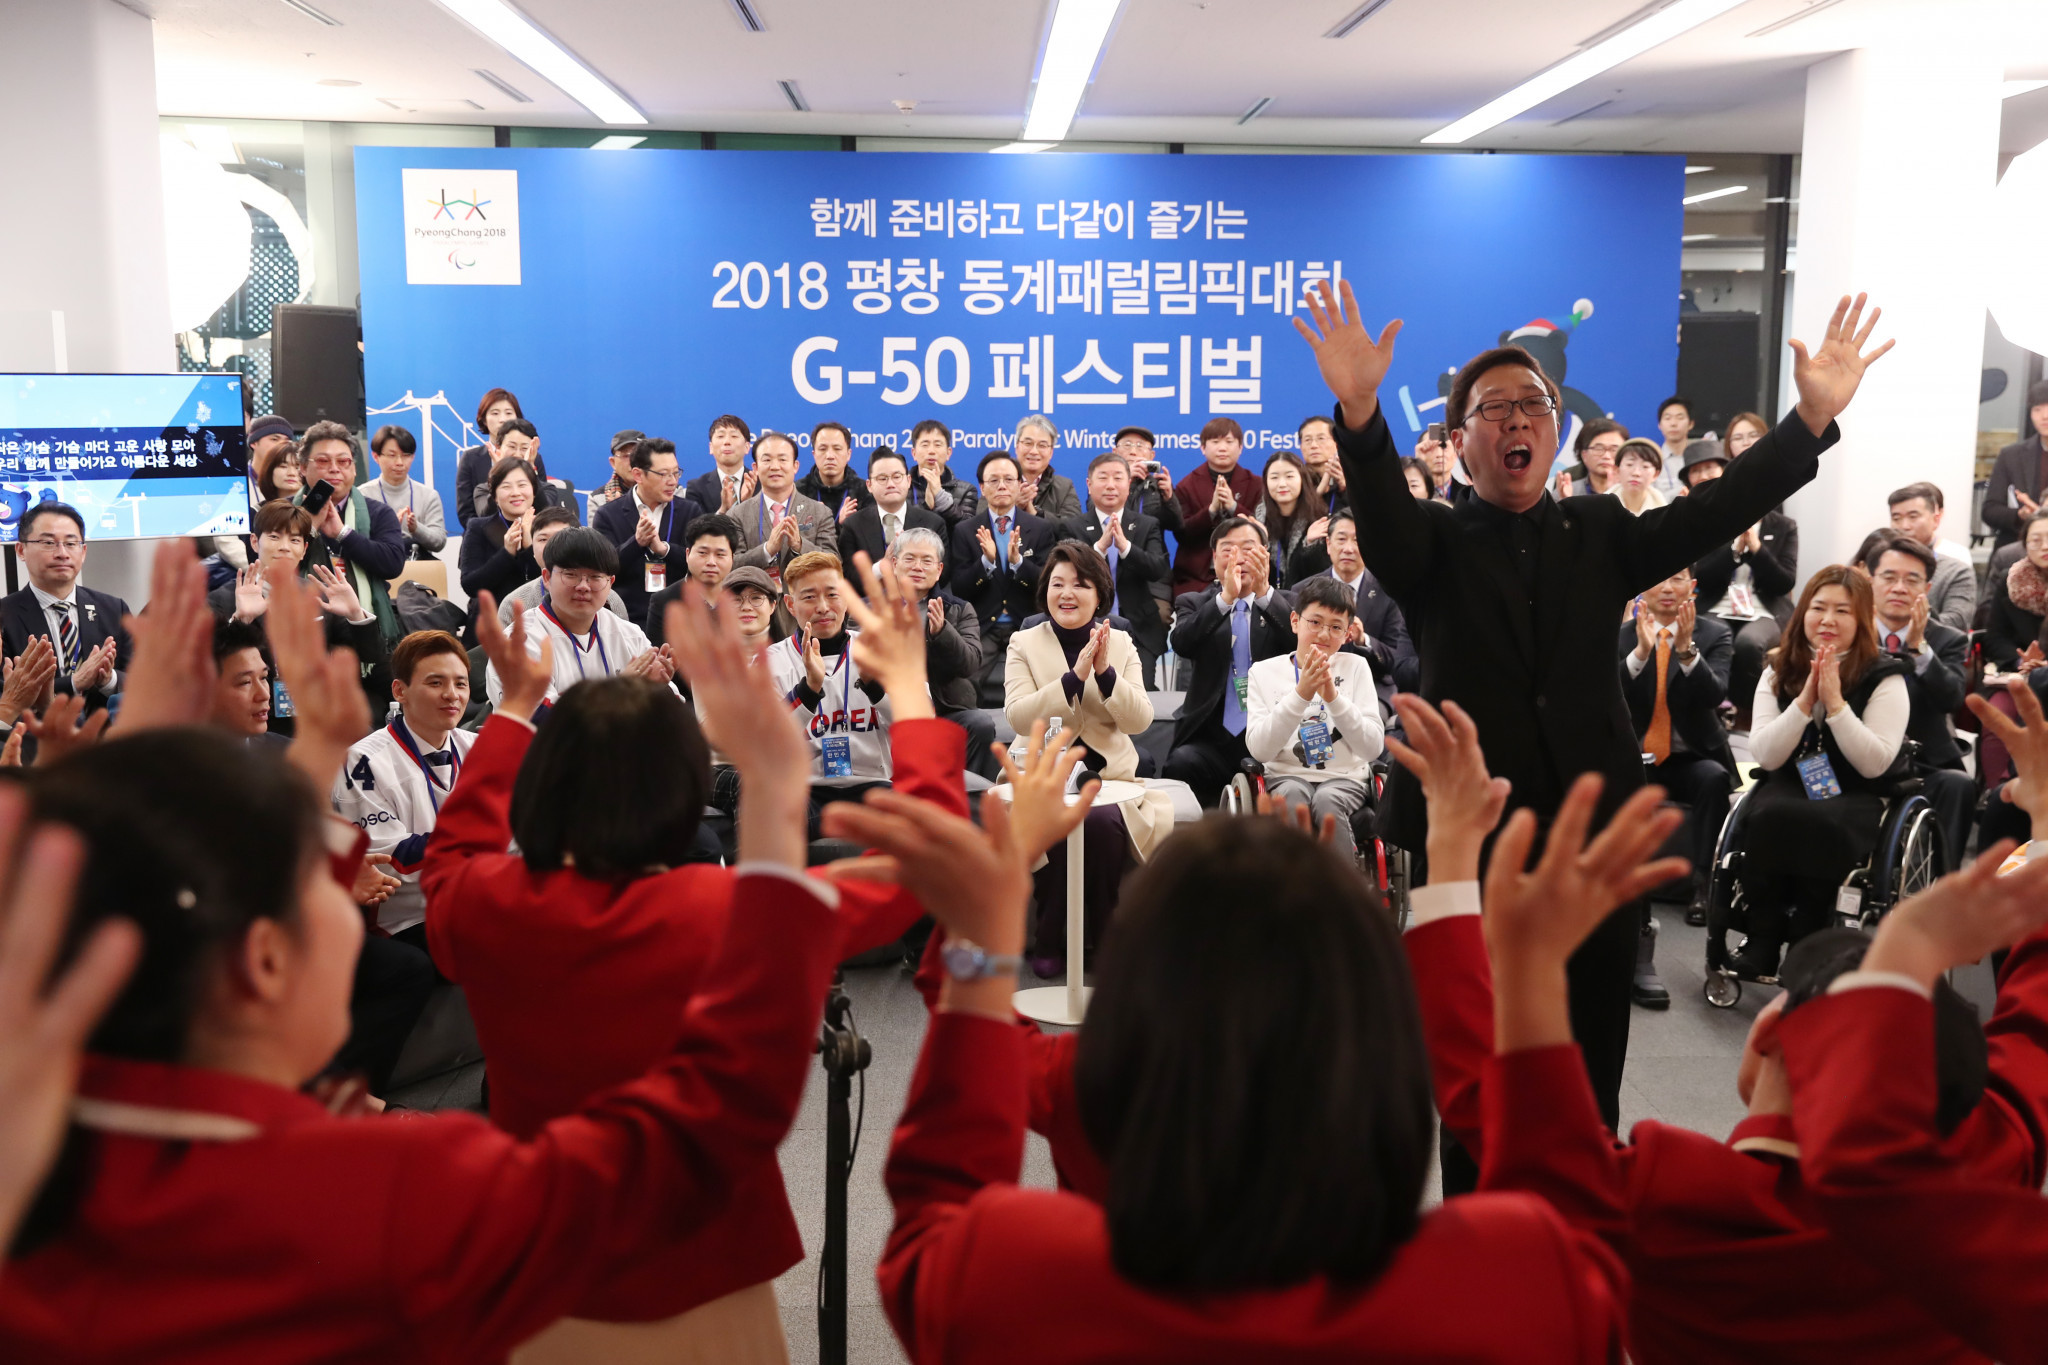 The Voices of Seoul choir, in red, entertained the crowd at the event ©Pyeongchang 2018